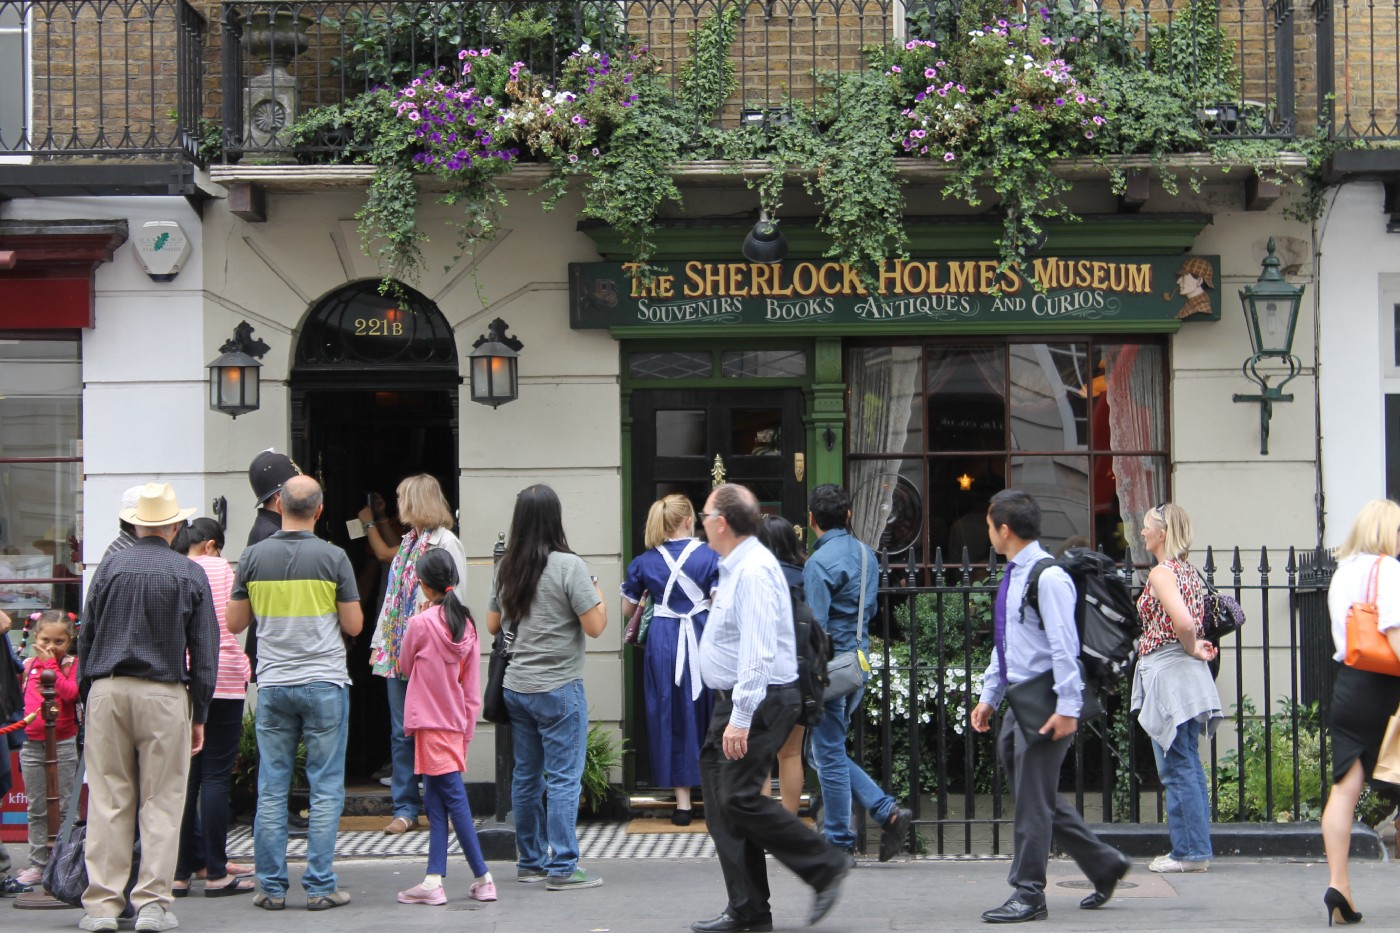 A picture of people walking along the street in front of the storefront for the Sherlock Holmes Museum in London.